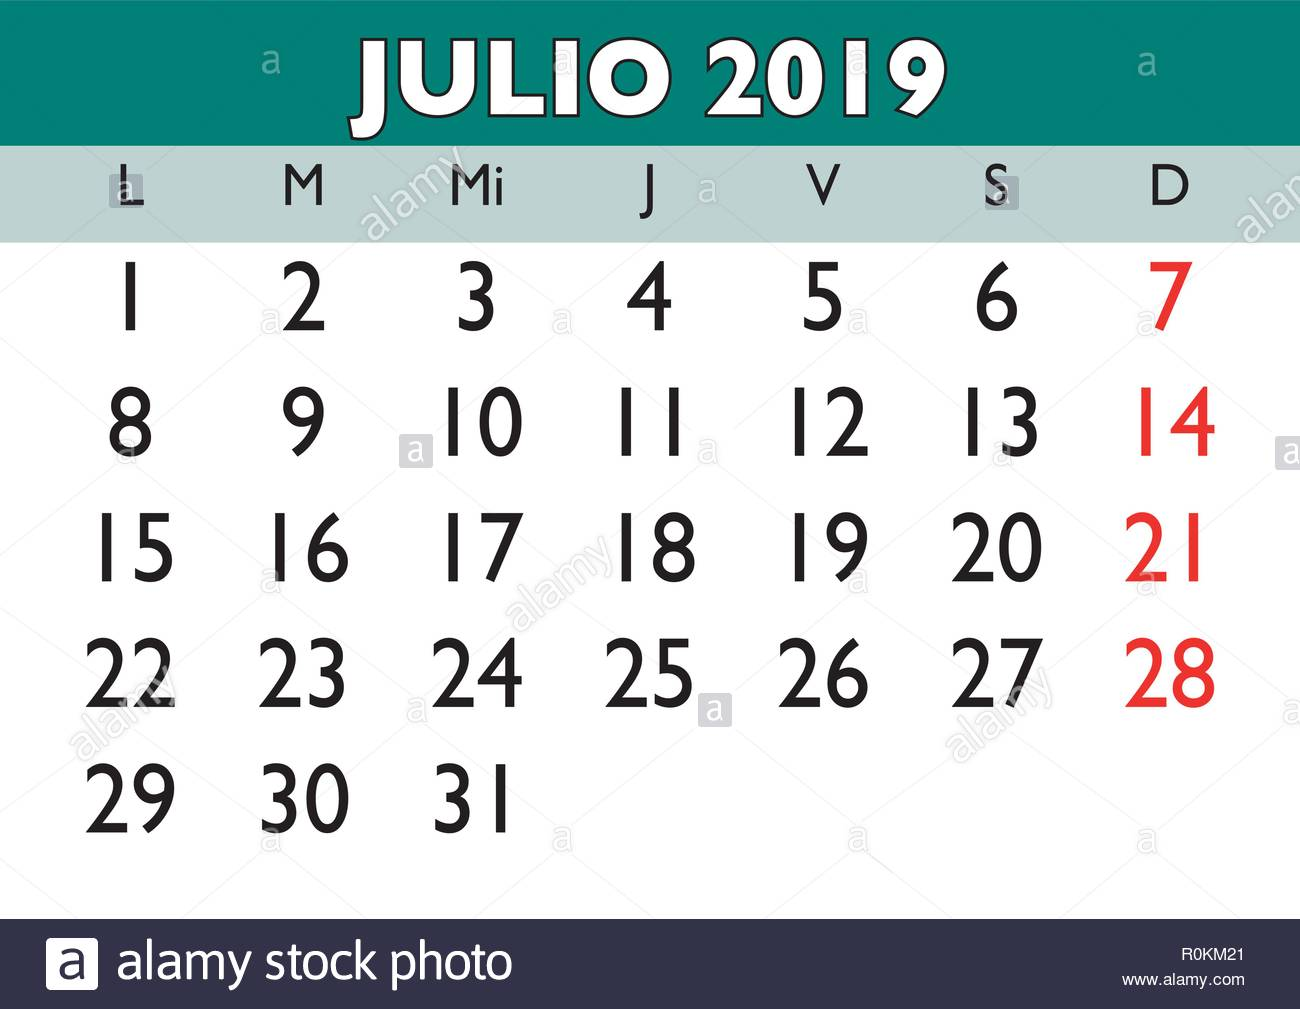 Calendario Calendario Julio 2019.July Month In A Year 2019 Wall Calendar In Spanish Julio